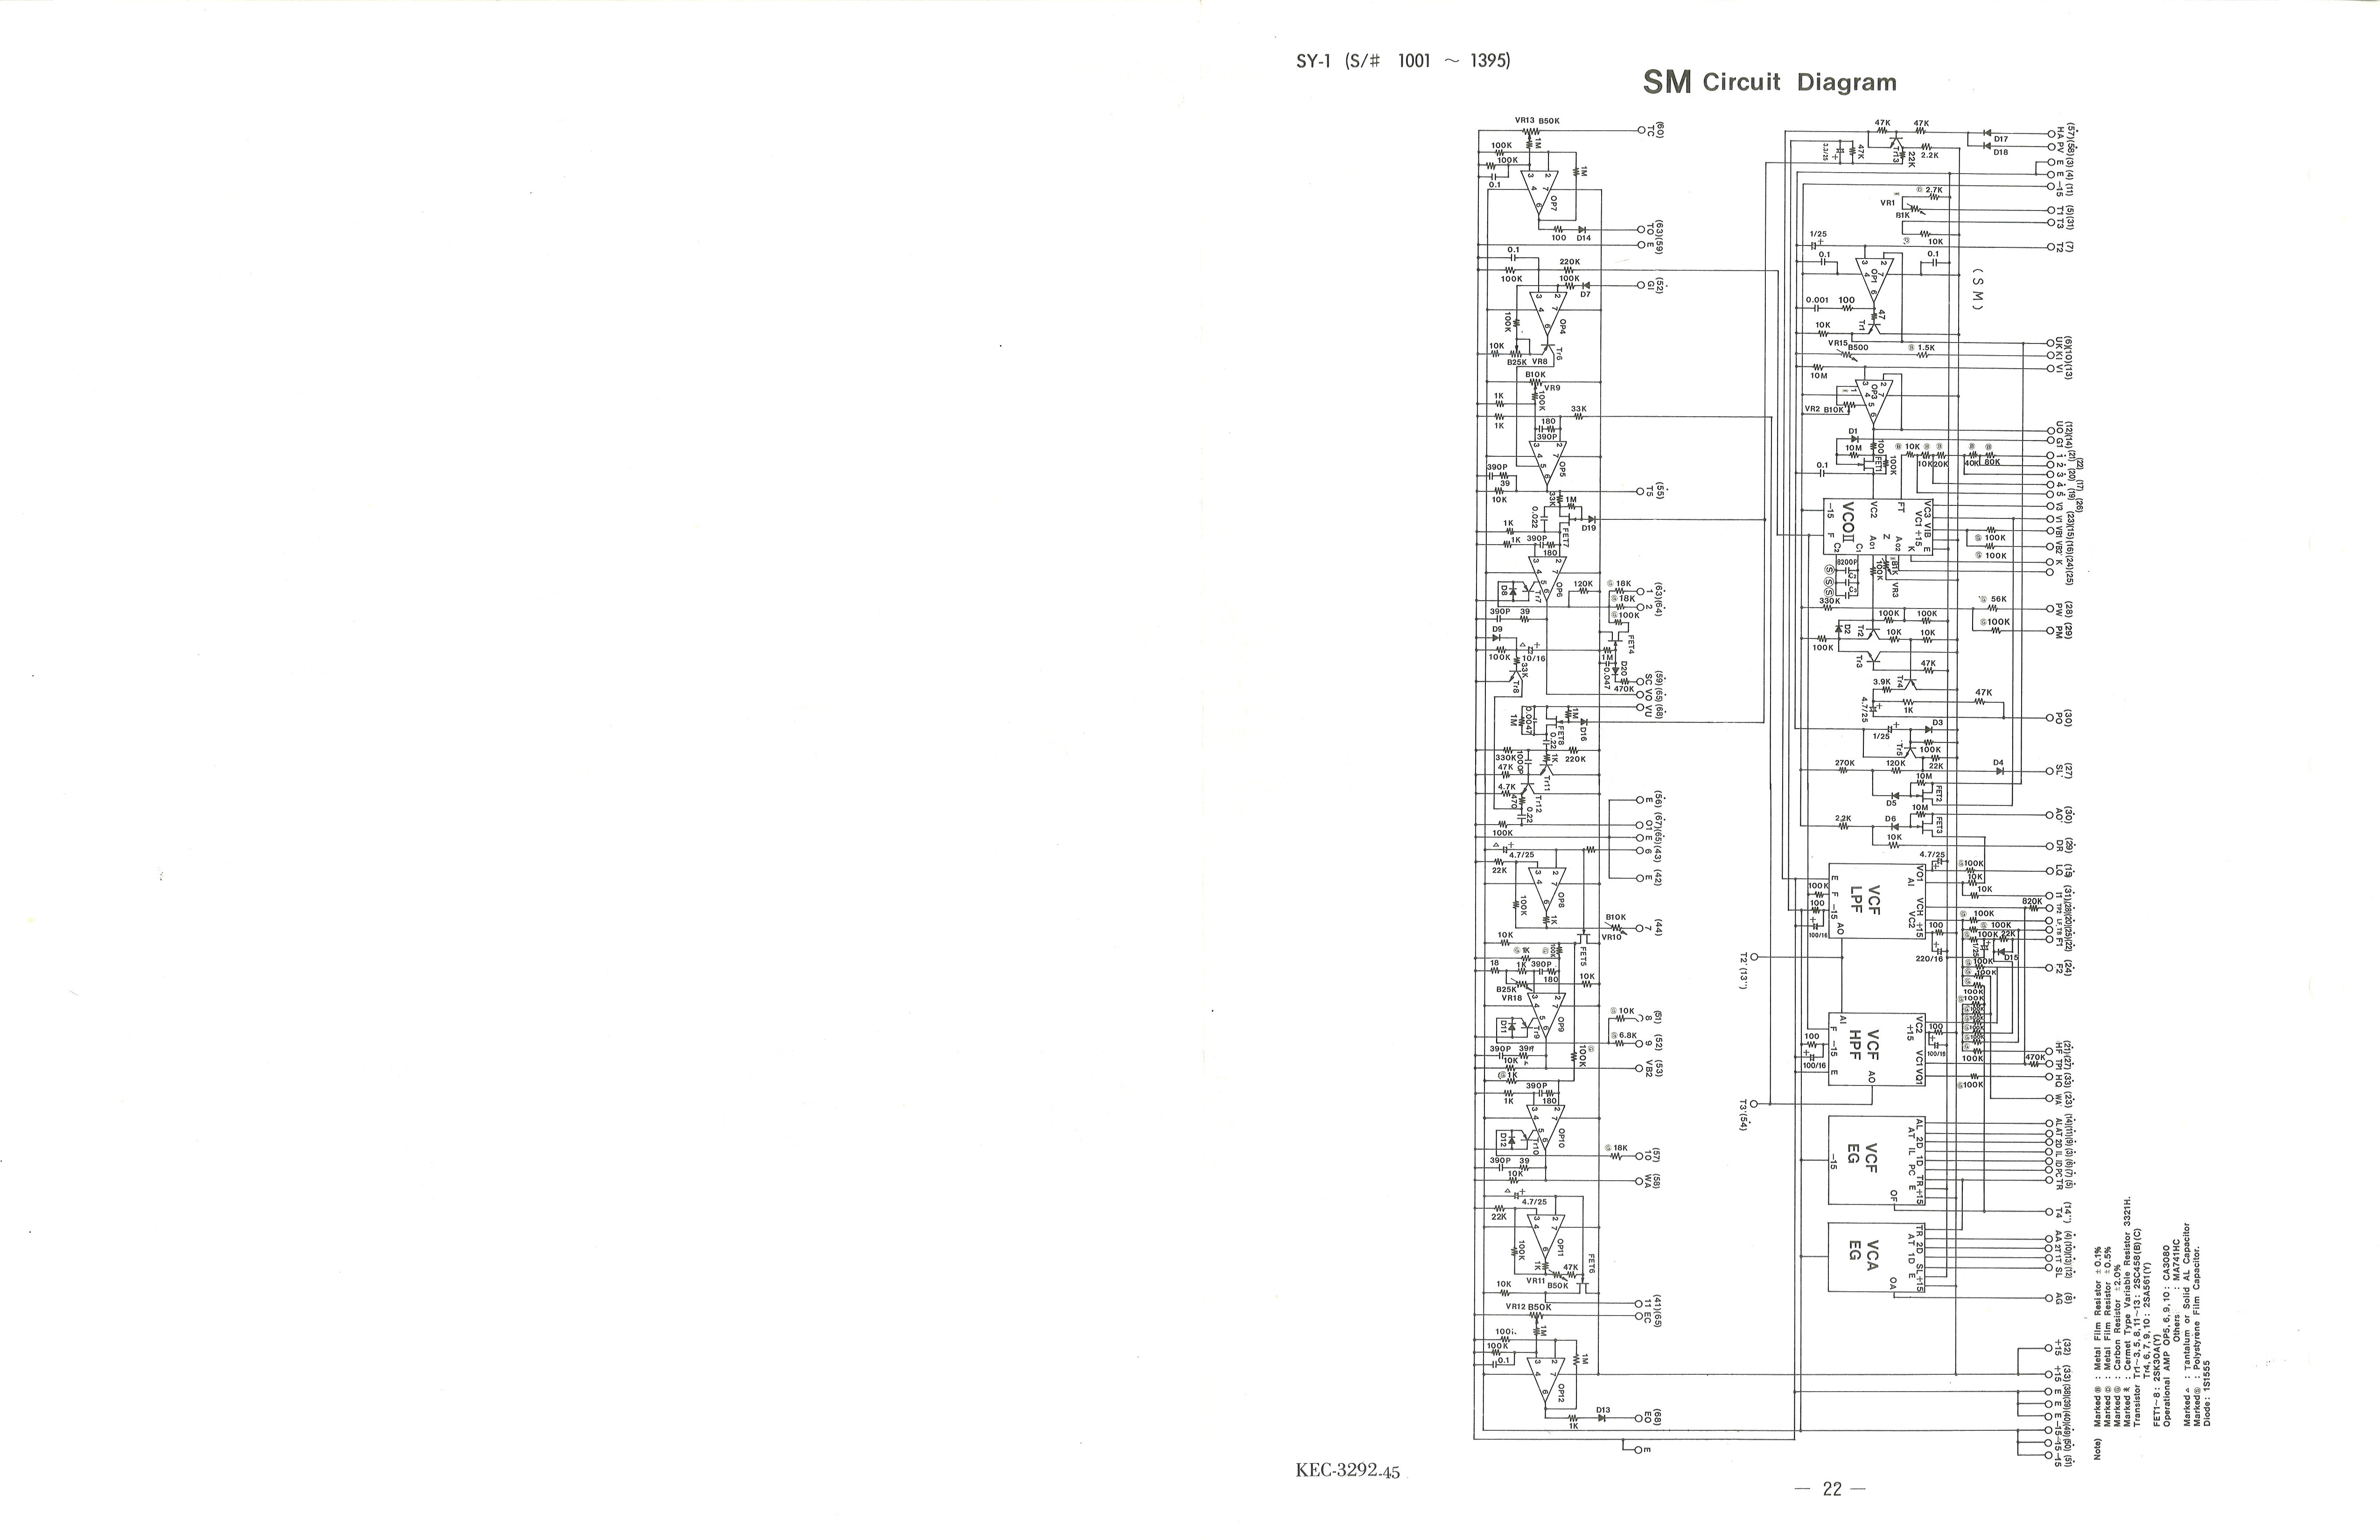 yamaha sy 1 service manual schematic diagram example 22 sm circuit diagram (sn 1001 1395)